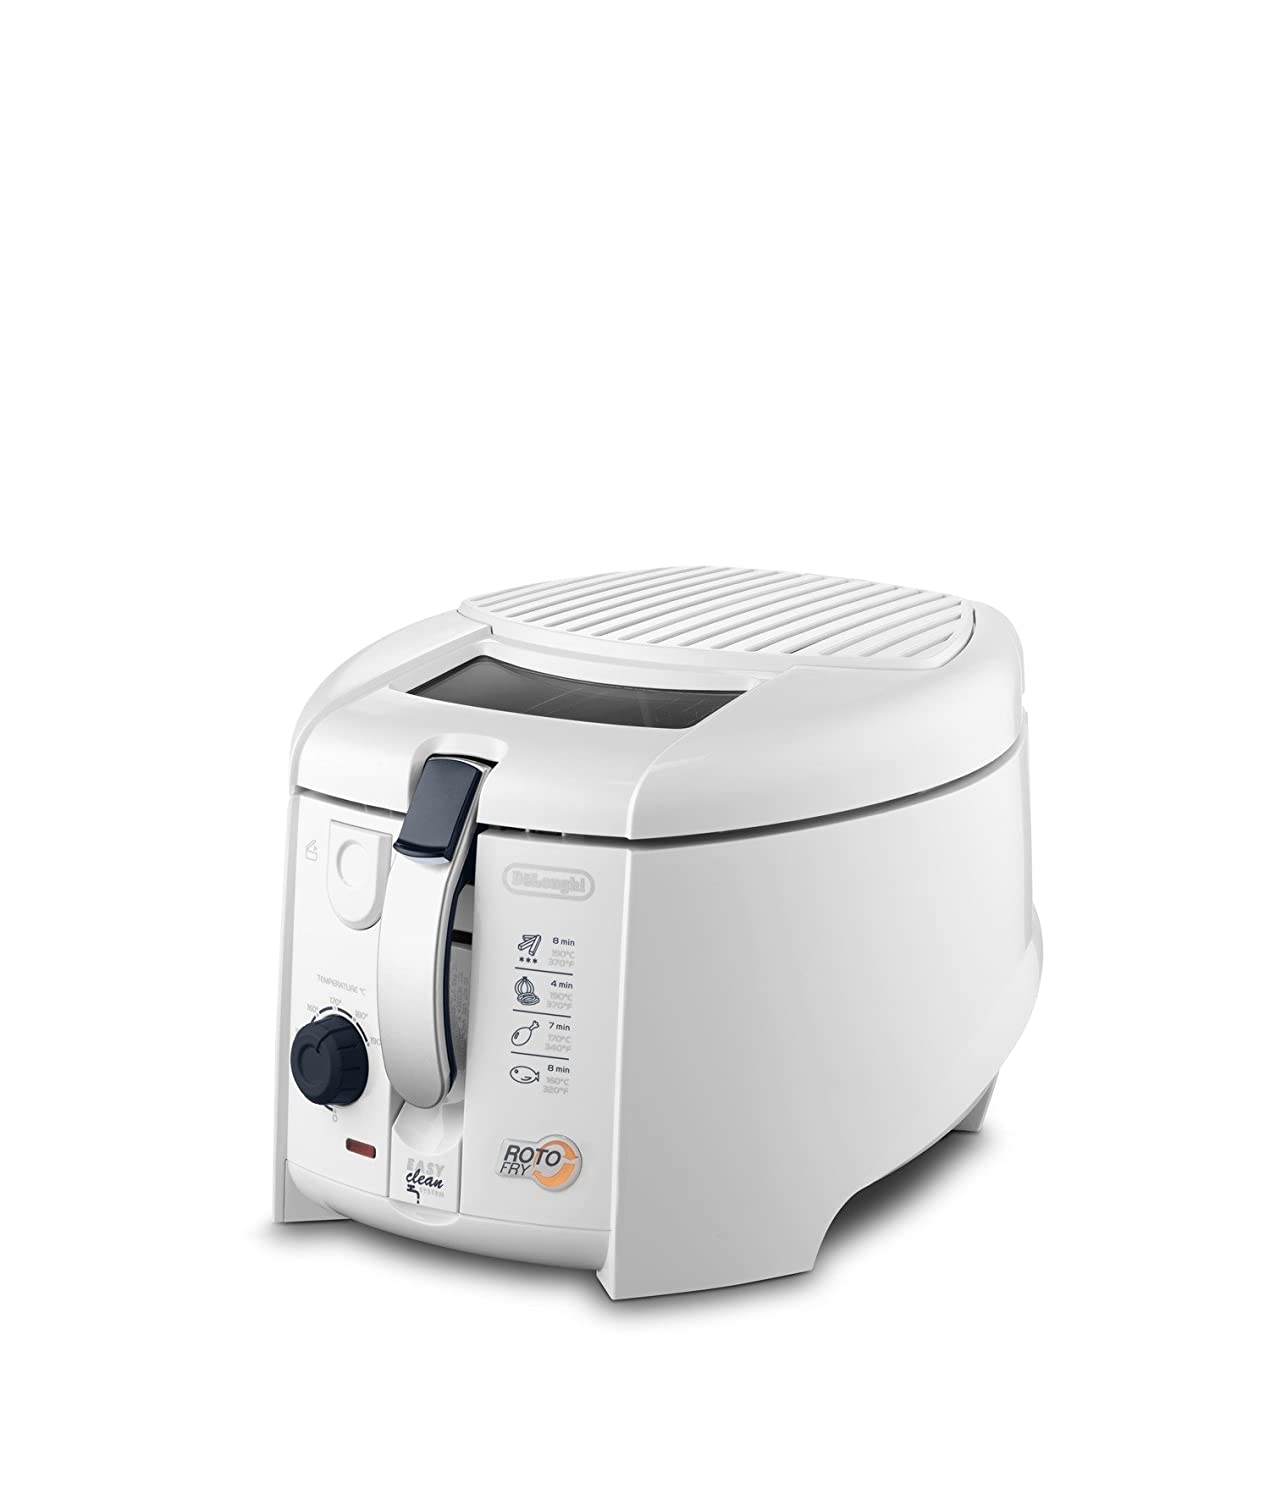 DeLonghi F 28.311.W1 Rotofritteuse